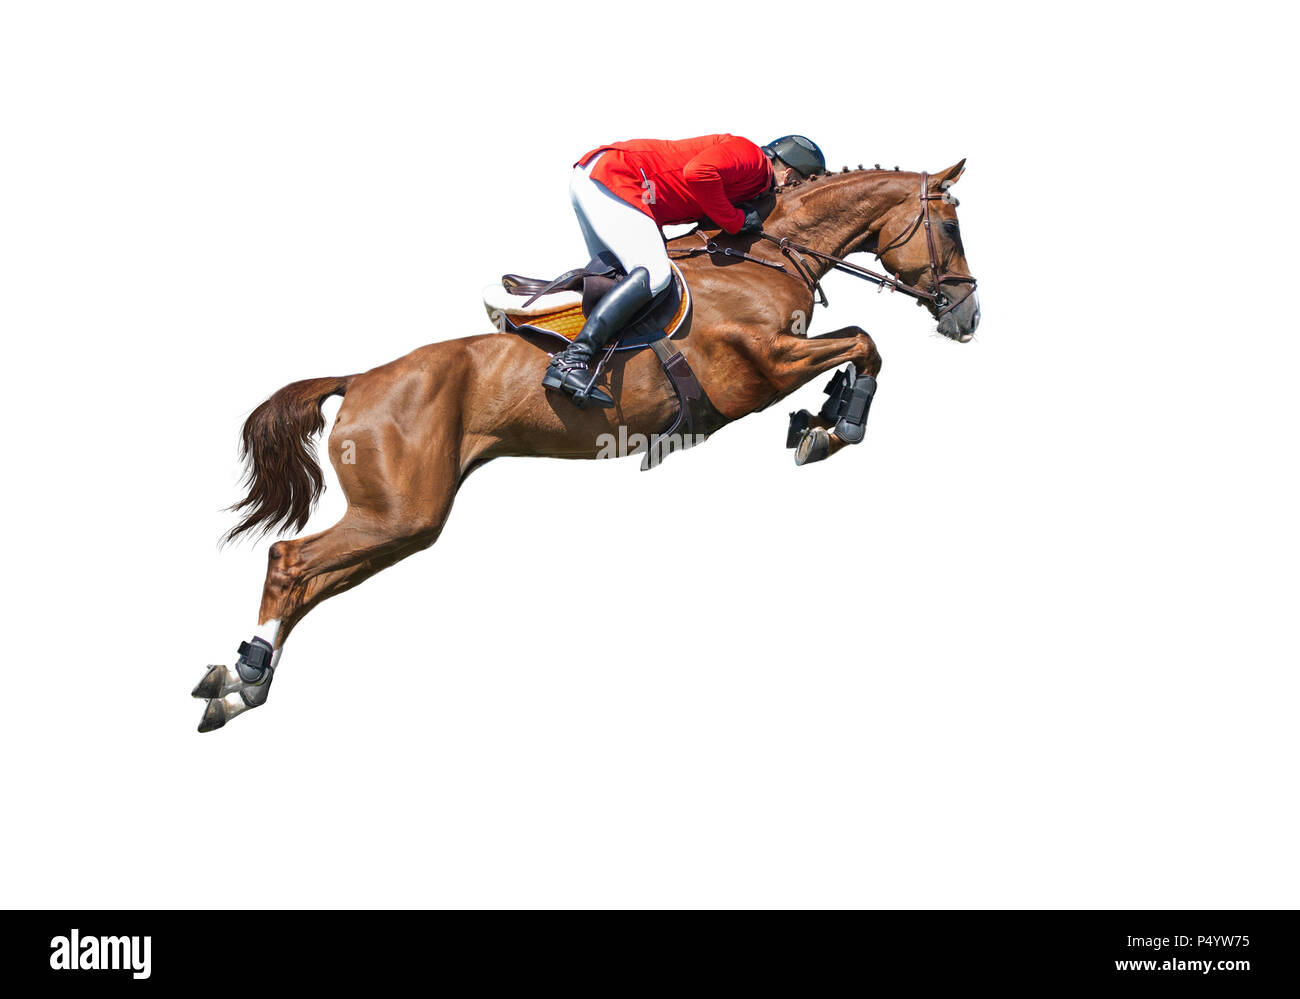 Rider in red jaket on bay horse in jumping show, isolated on white background - Stock Image